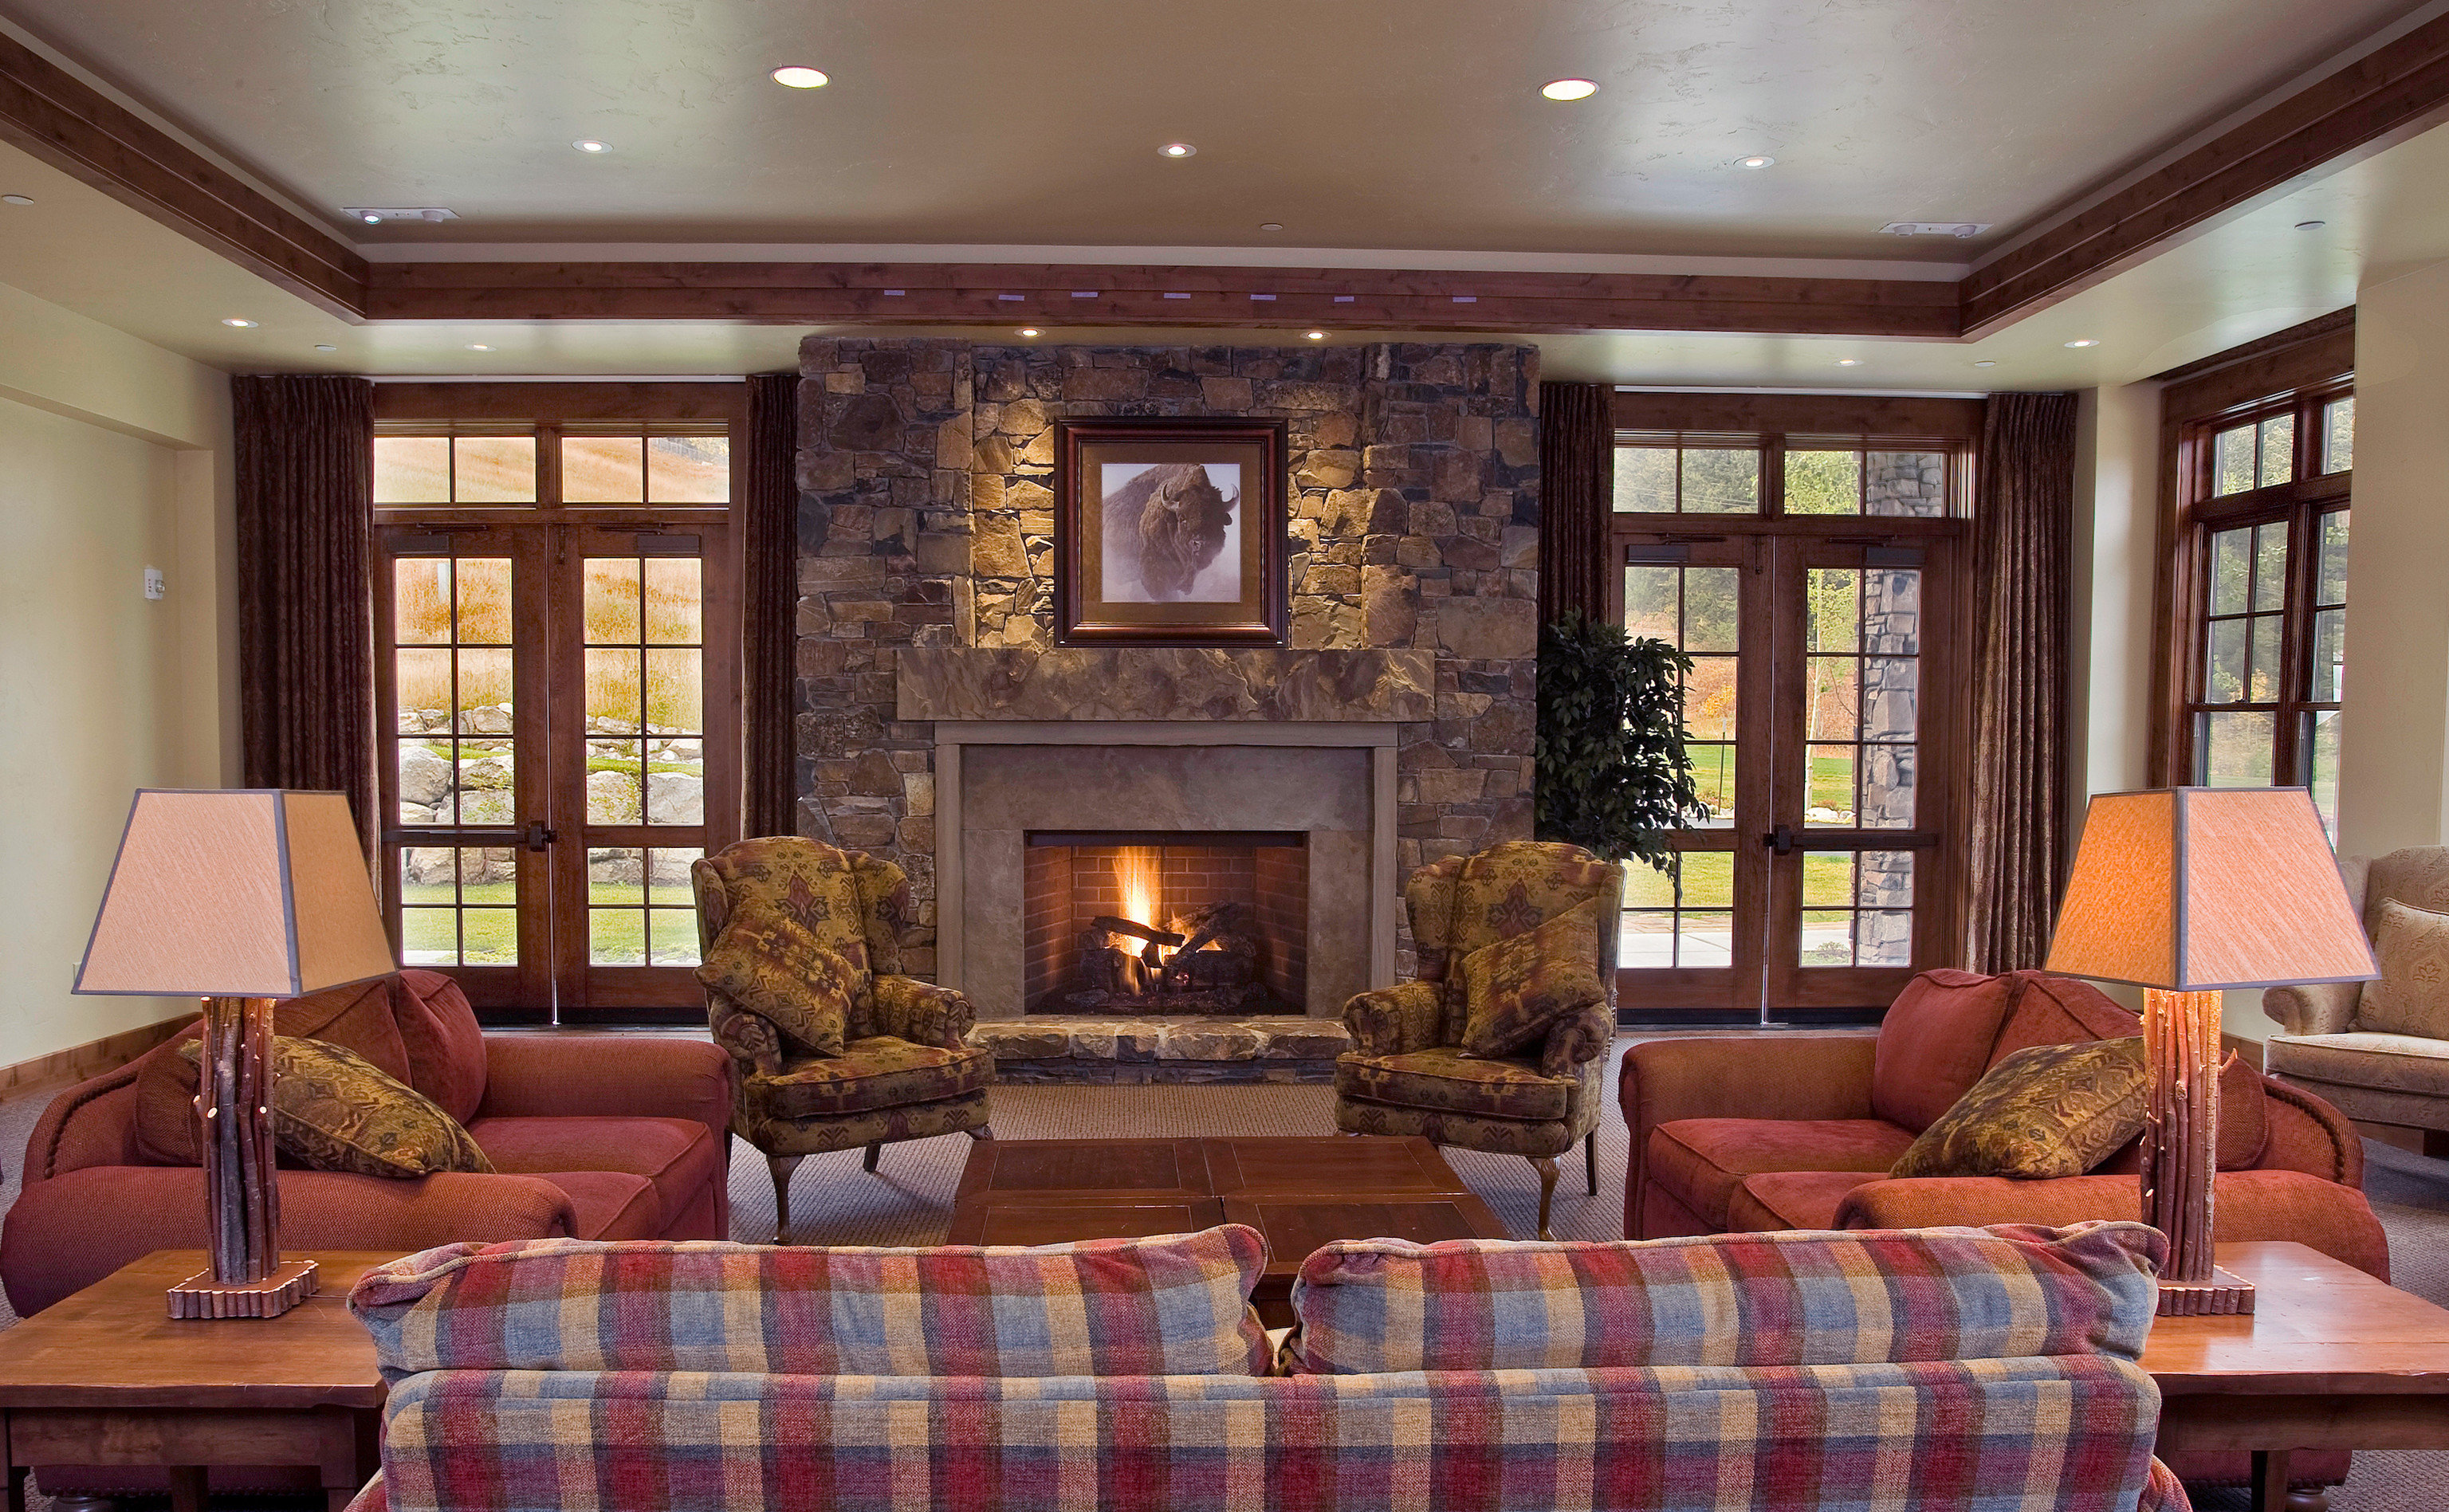 sofa Fireplace living room fire property home hardwood mansion condominium Lobby